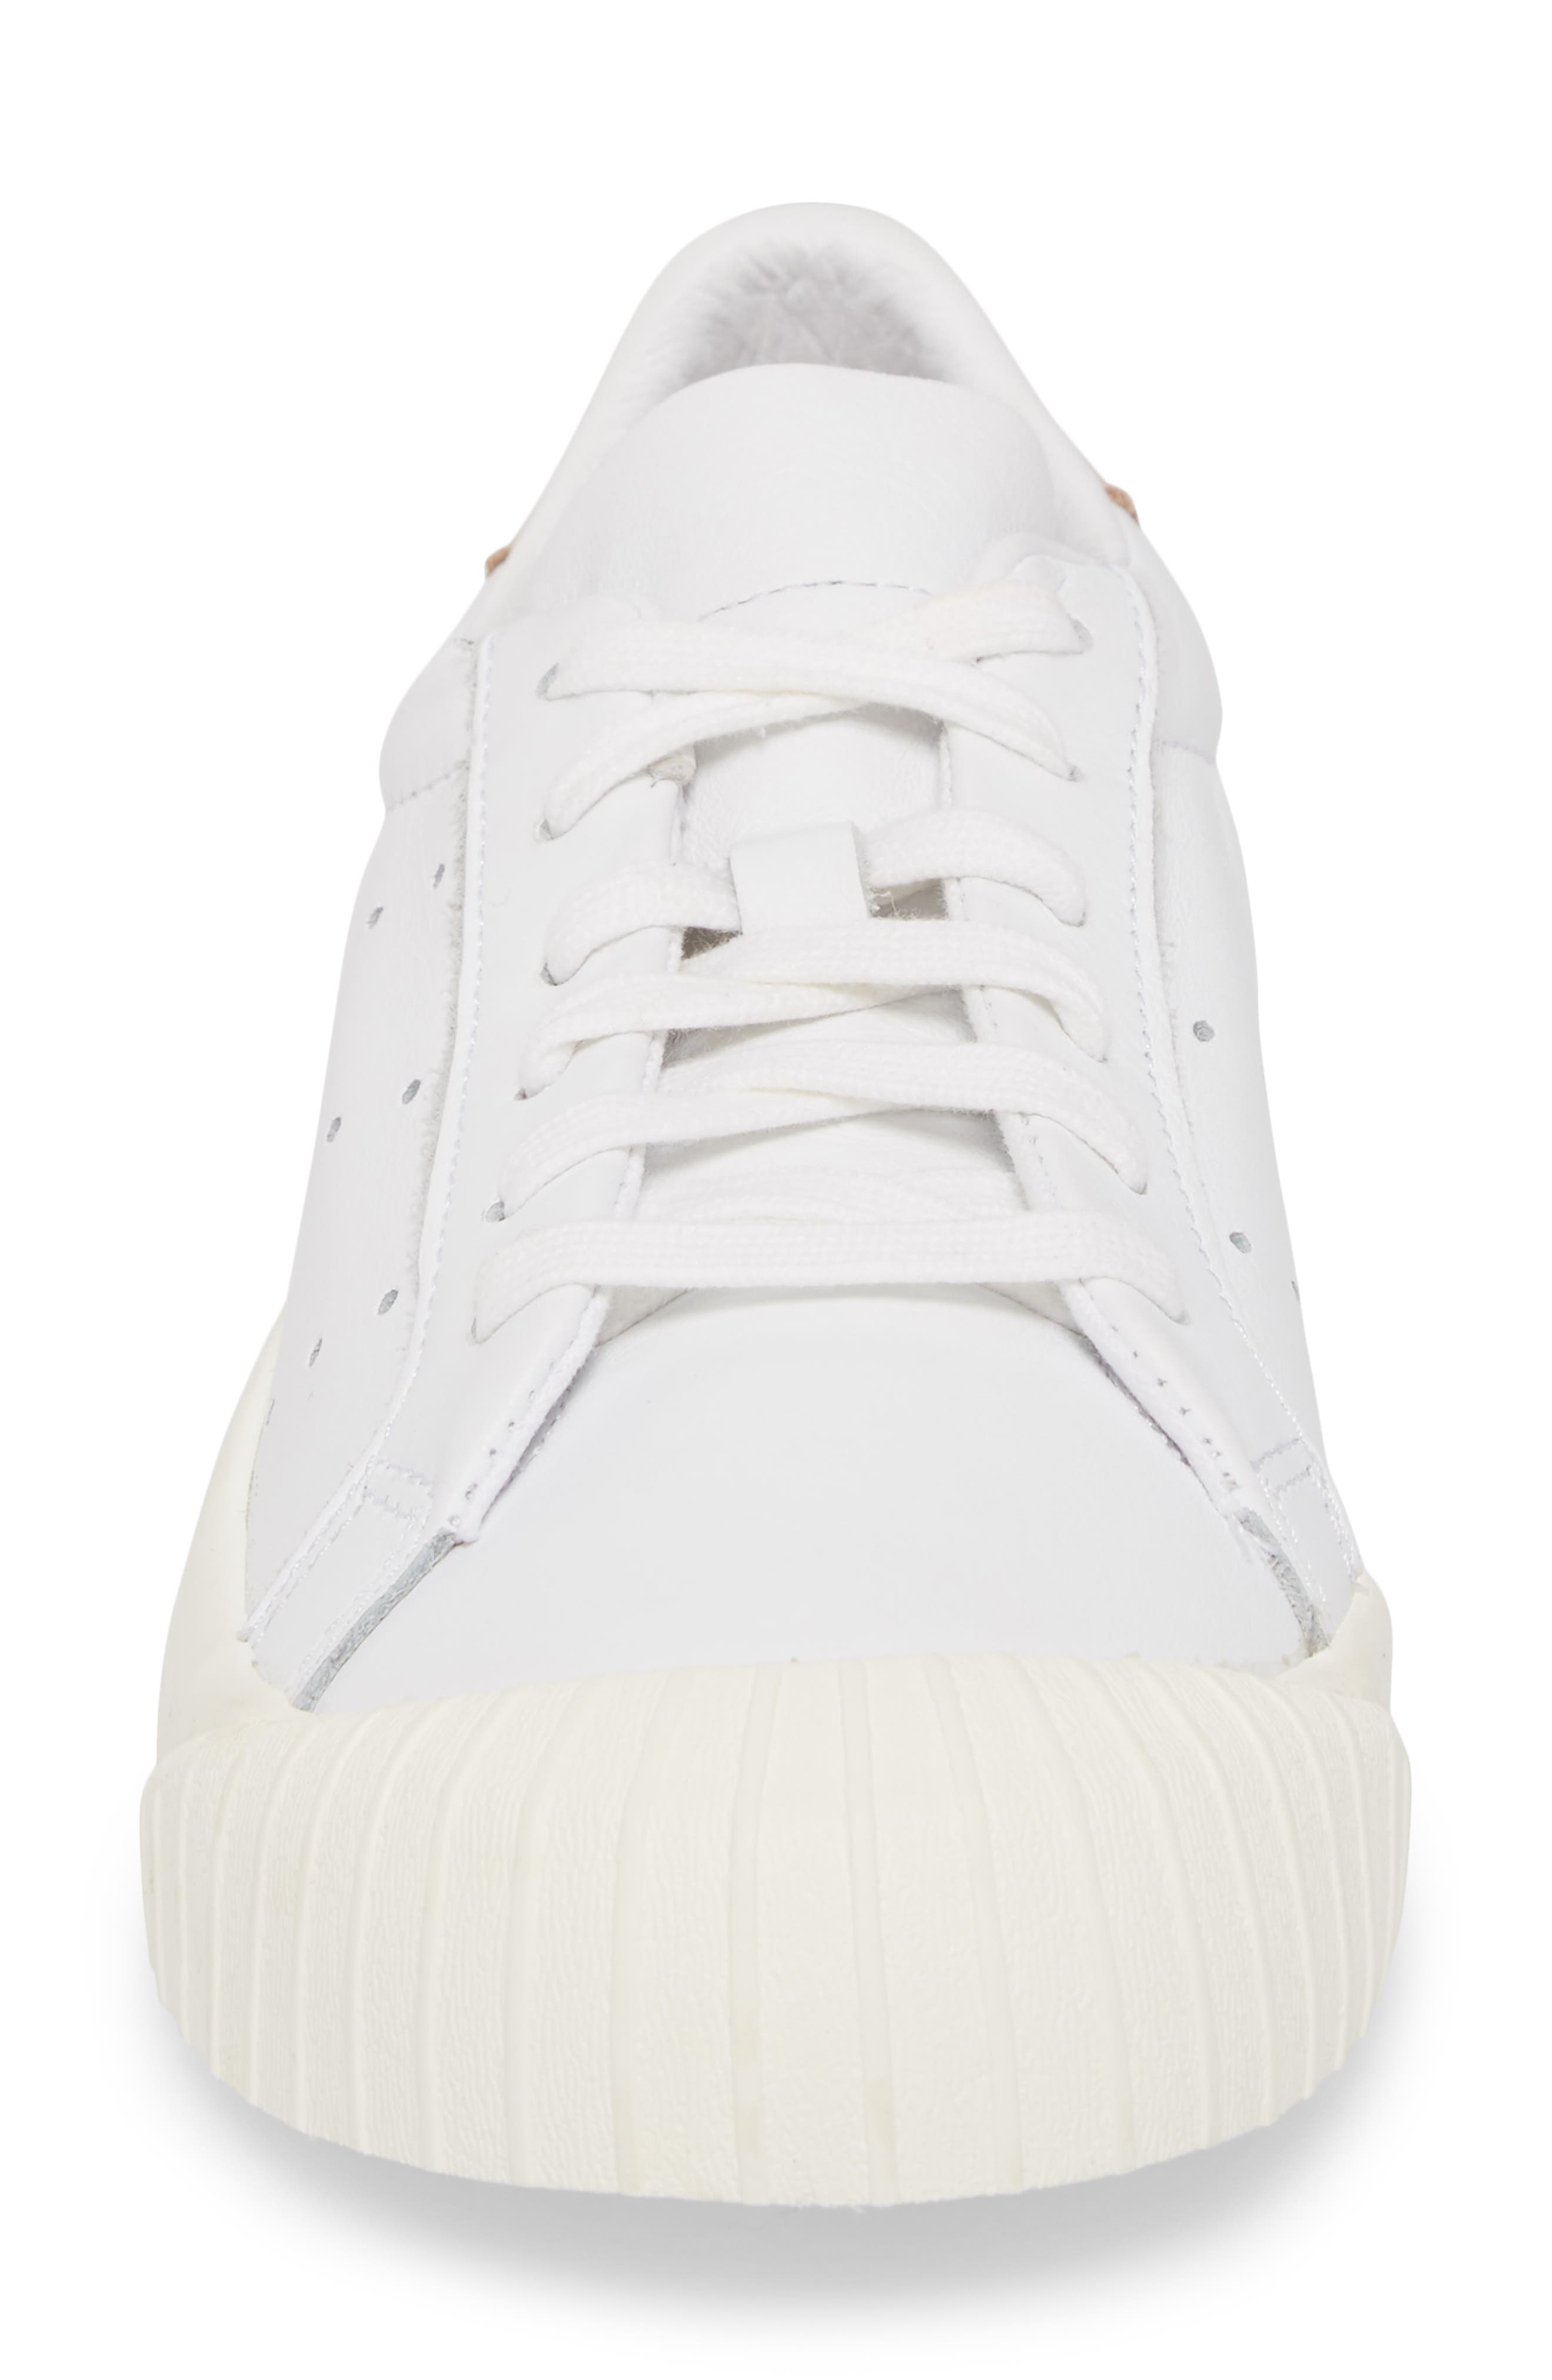 Everyn Perforated Low Top Sneaker,                             Alternate thumbnail 4, color,                             White/ White/ Ash Pearl